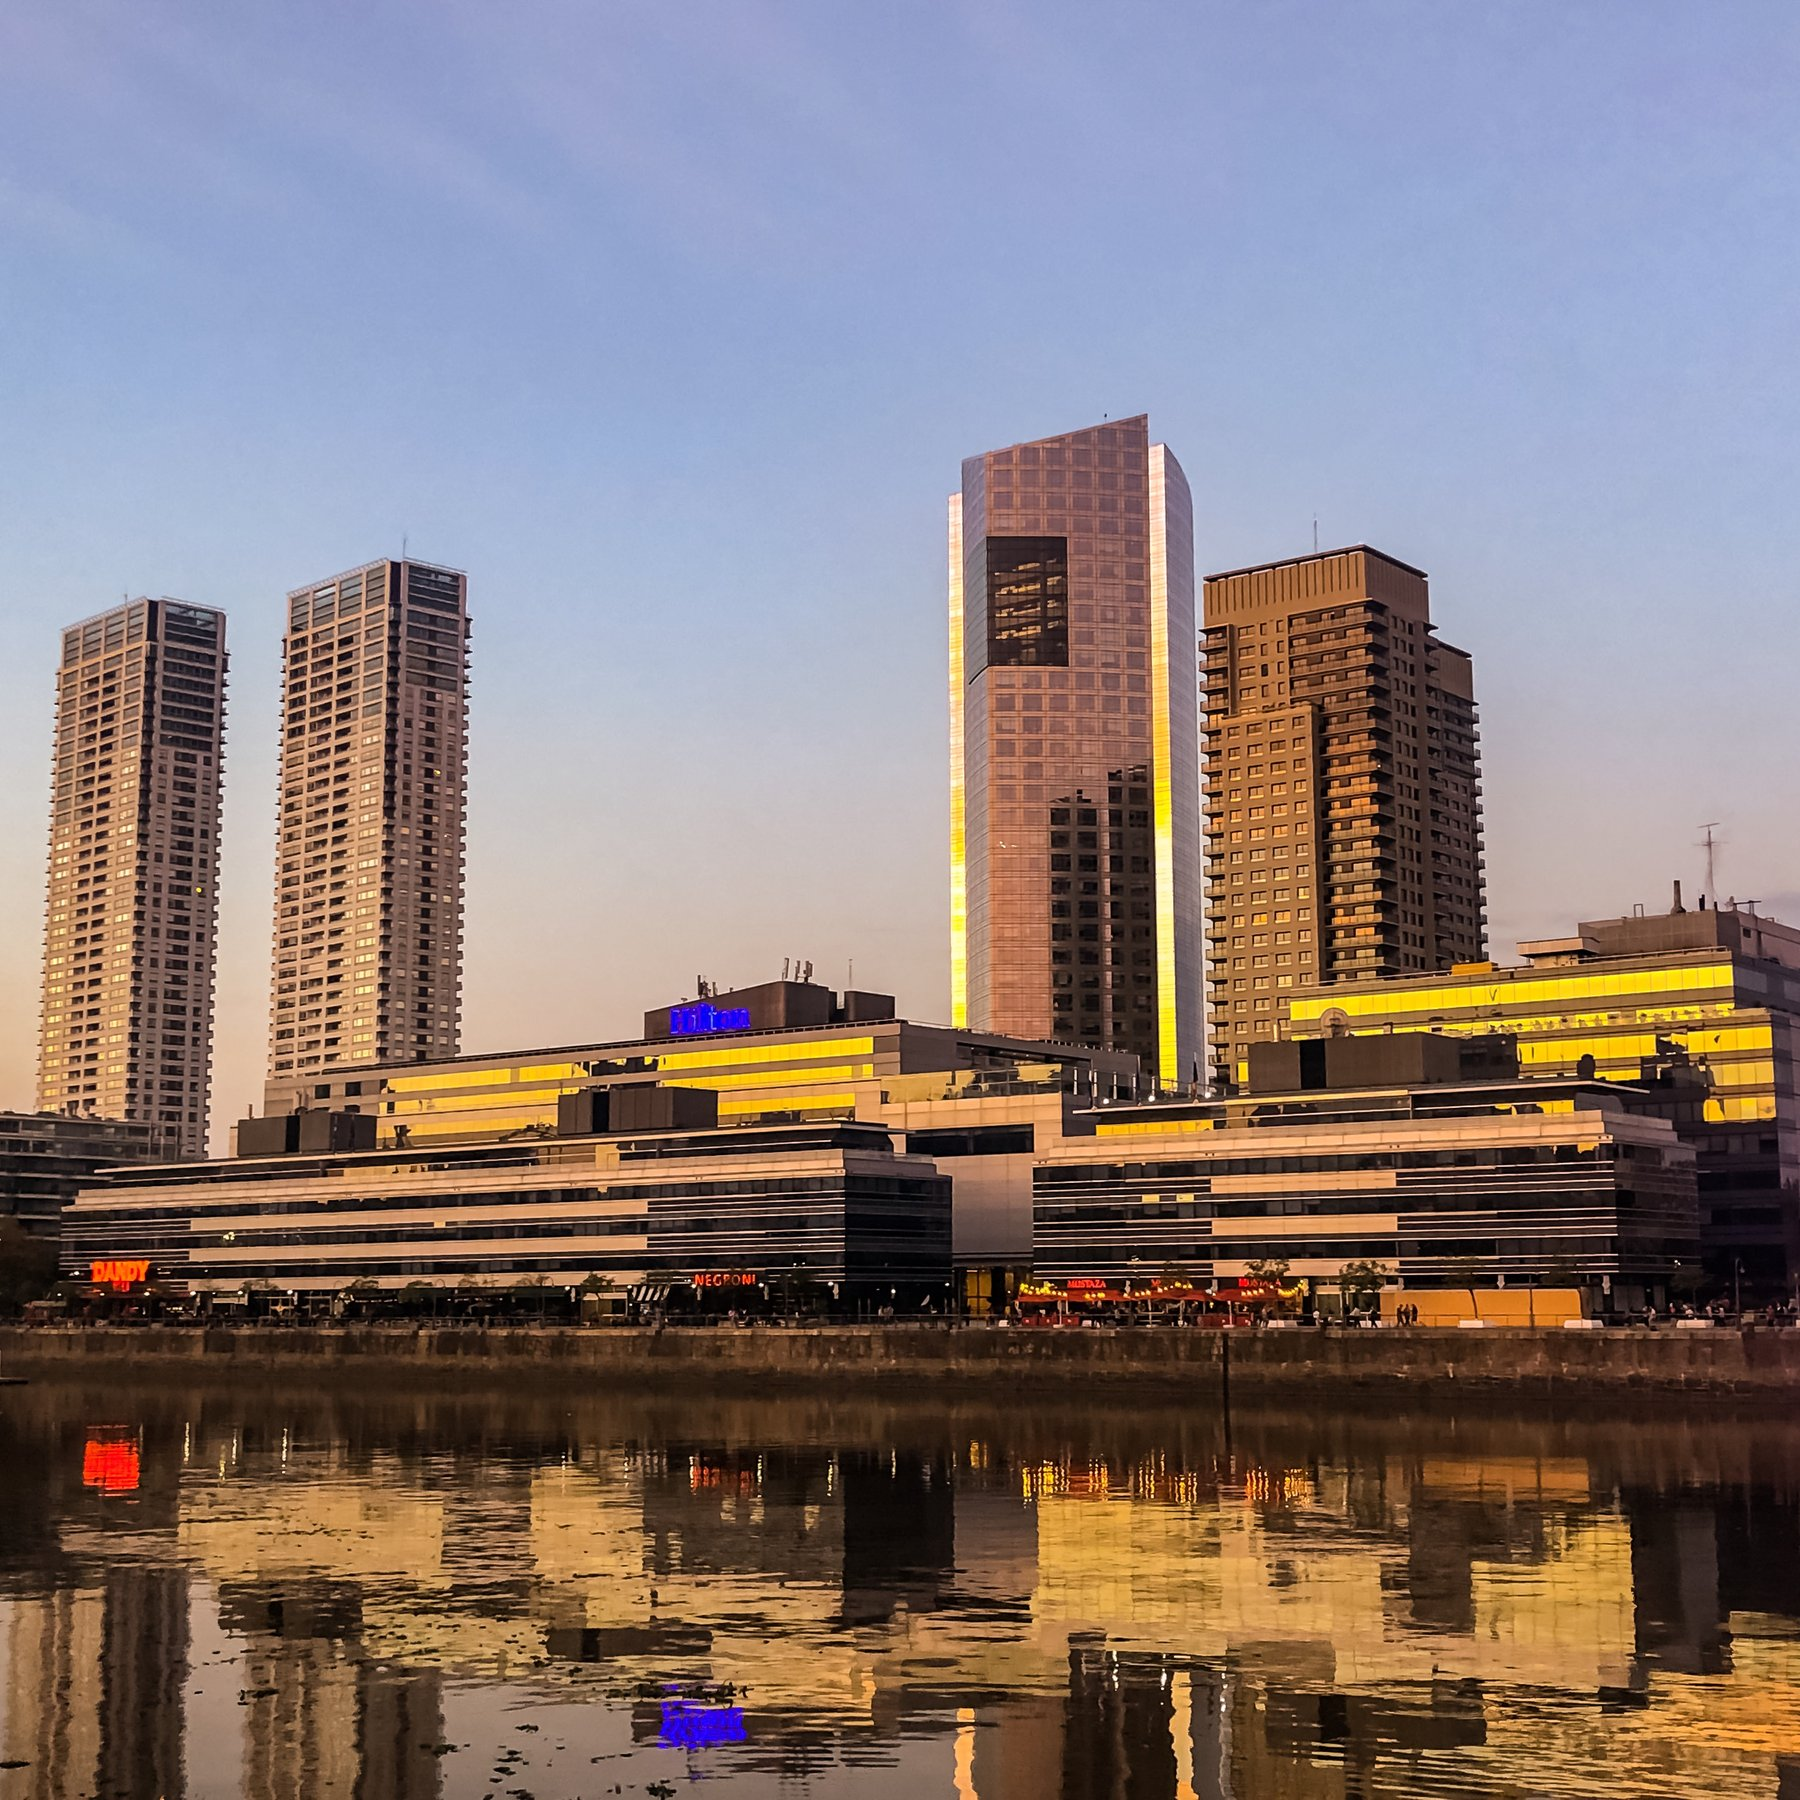 city buildings near body of water during daytime